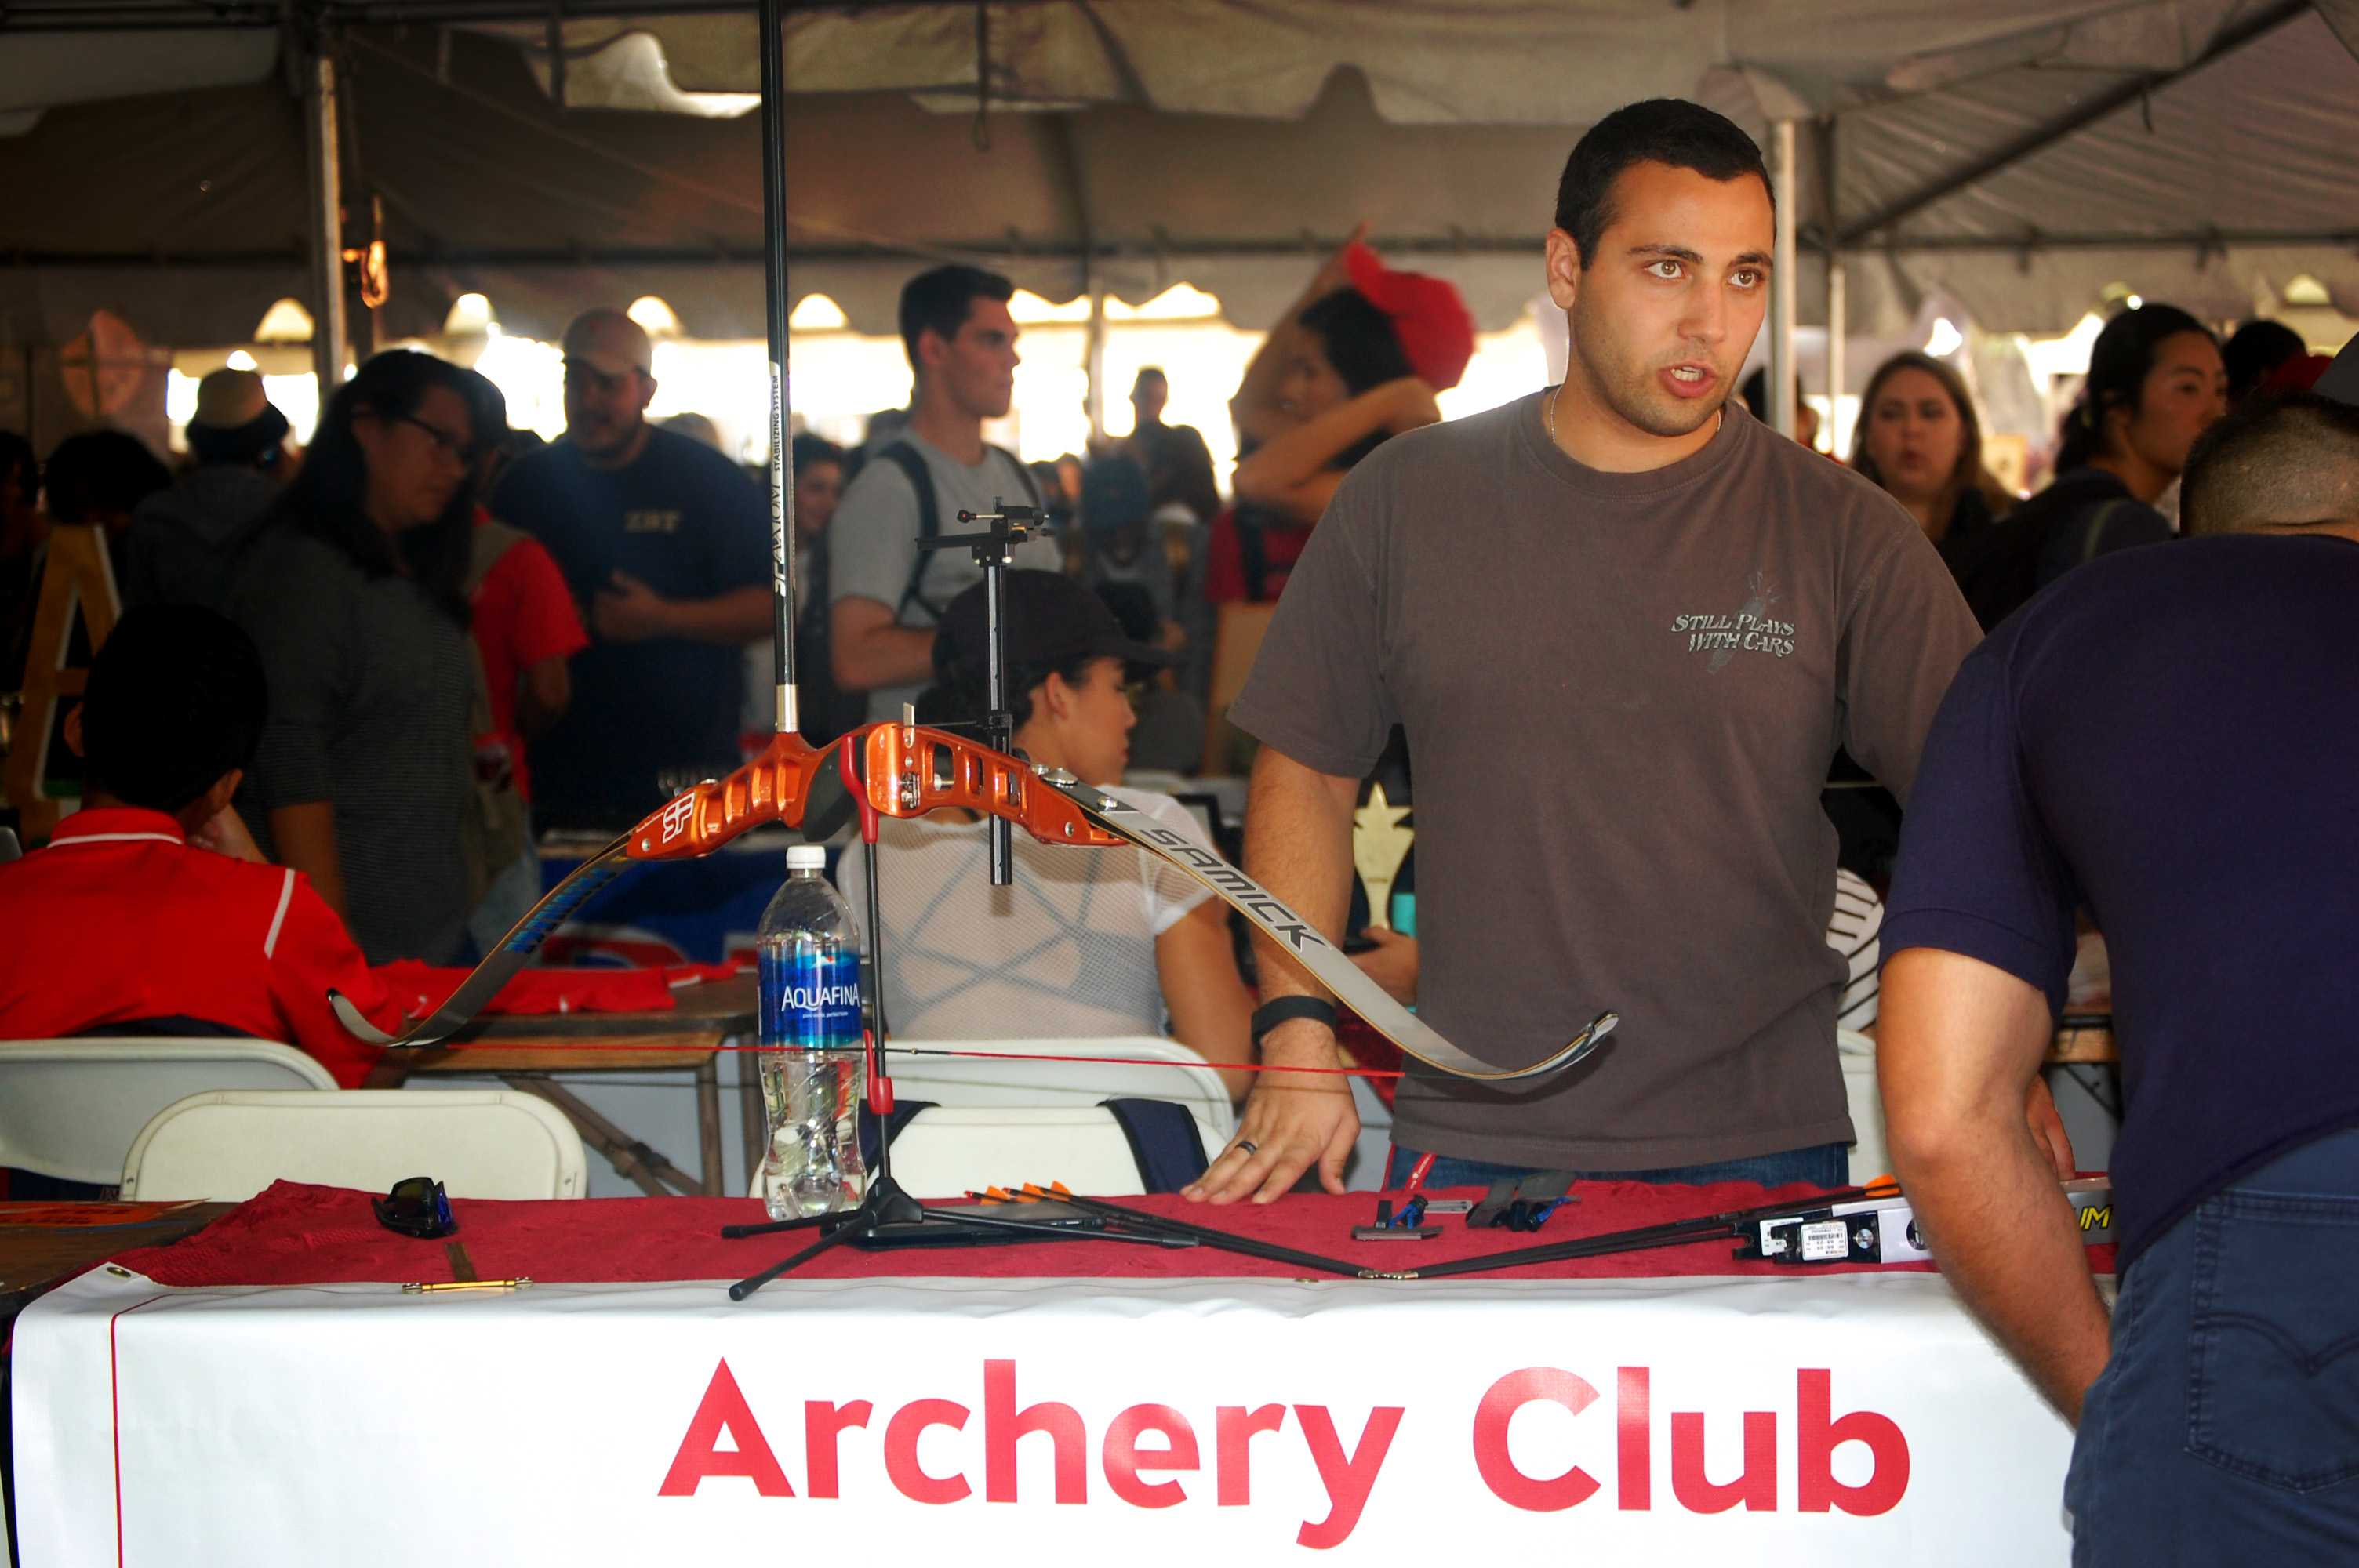 Student+speaks+to+people+at+archery+club+booth